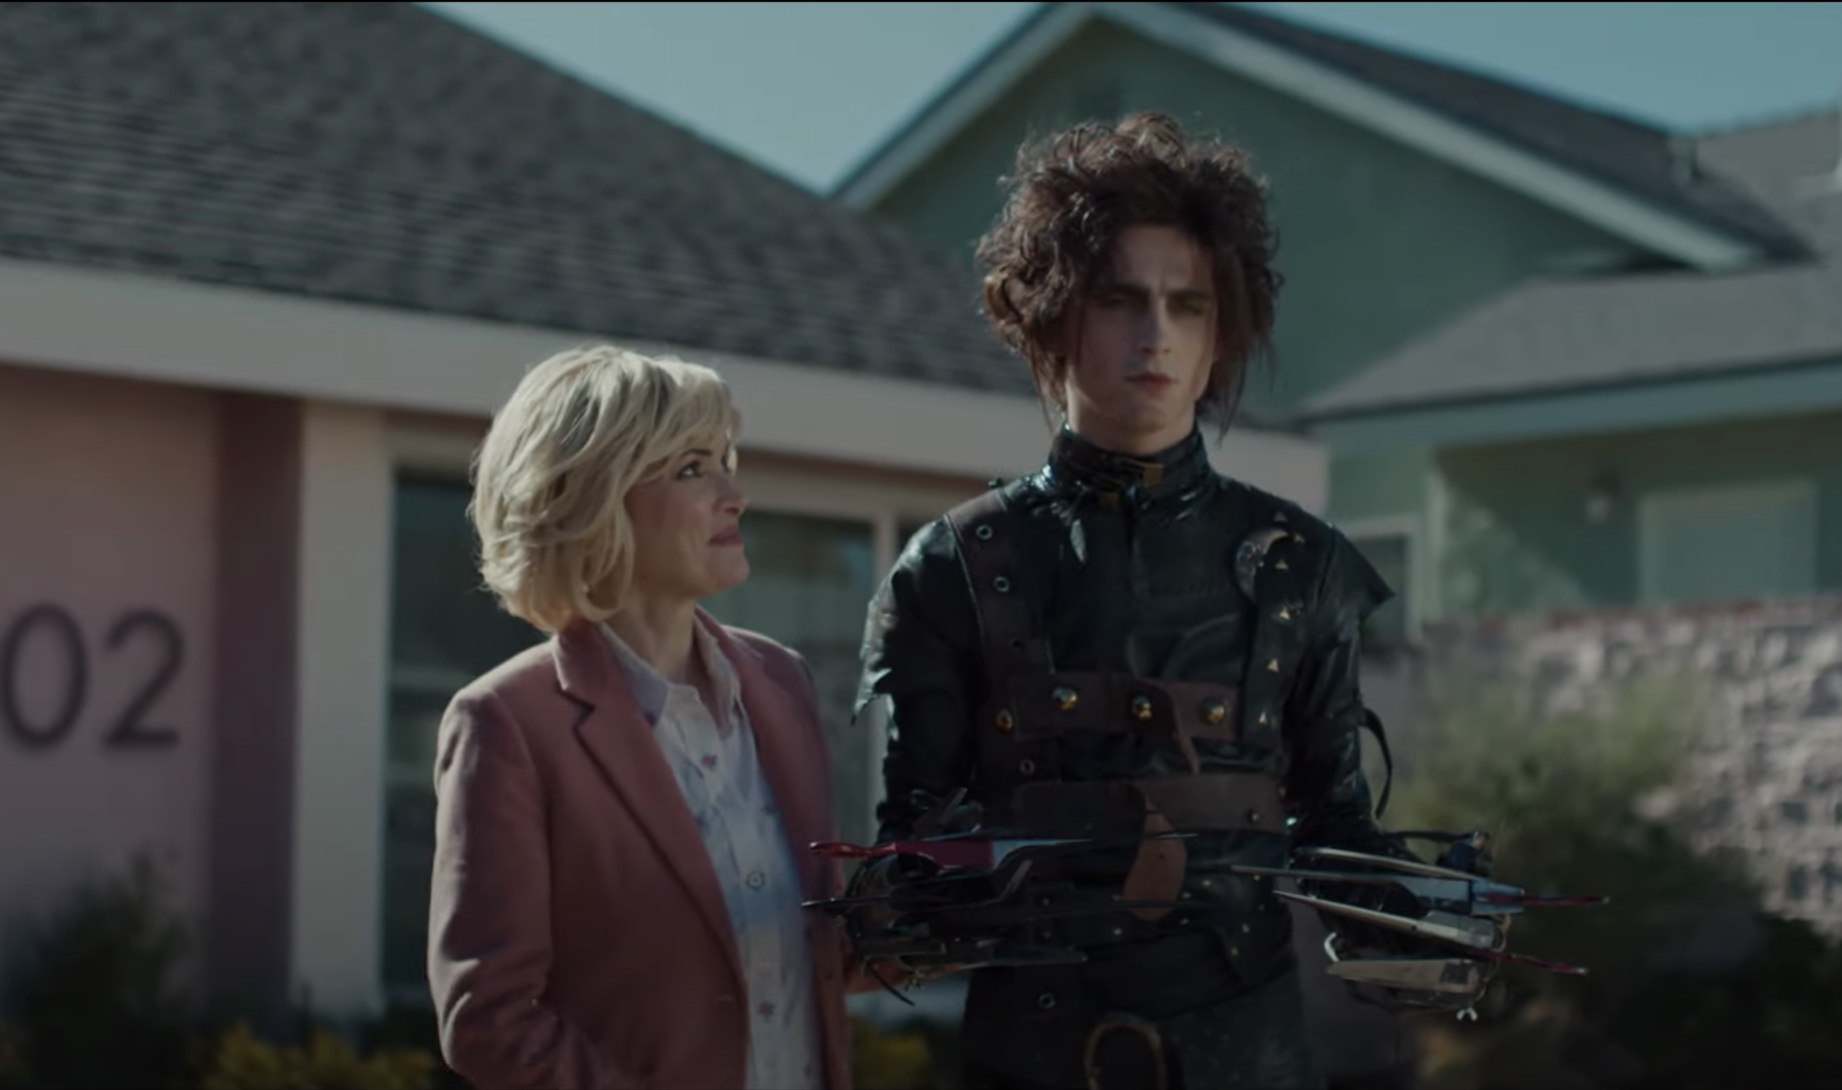 See Timothée Chalamet Play Edward Scissorhands' Son in Cadillac Super Bowl Ad